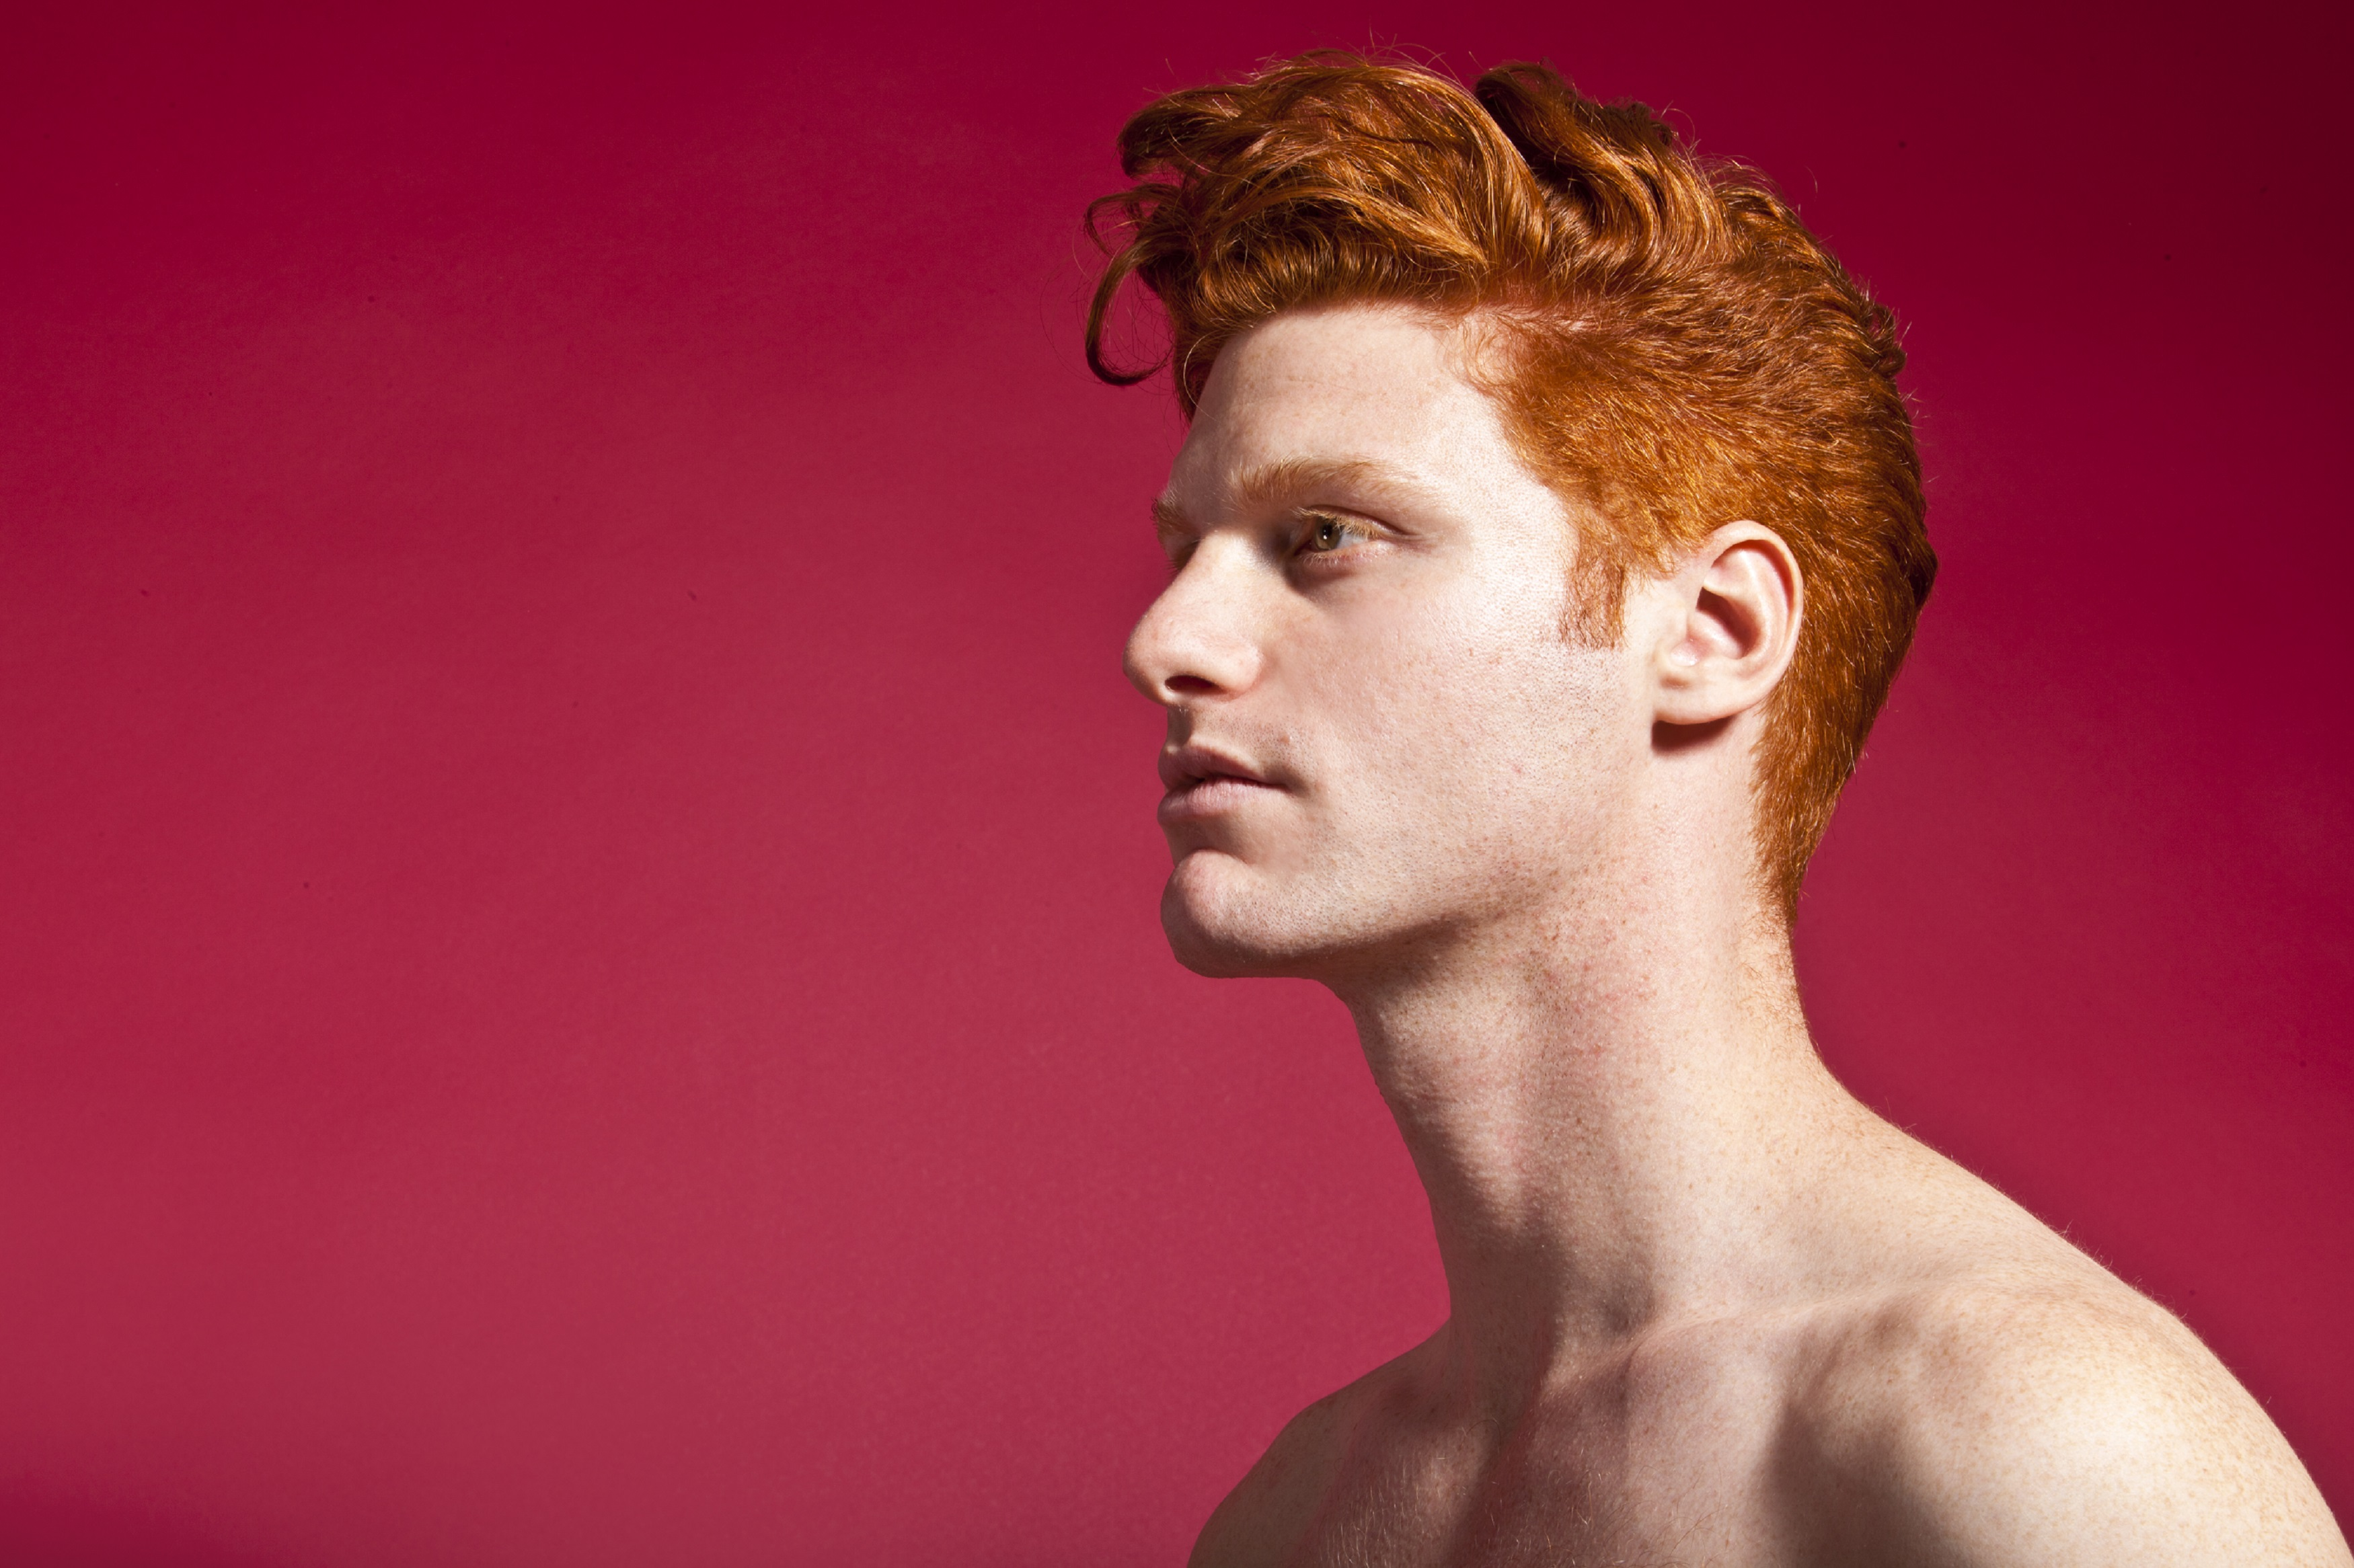 Red Hot Exhibition Celebrates The Ginger Male